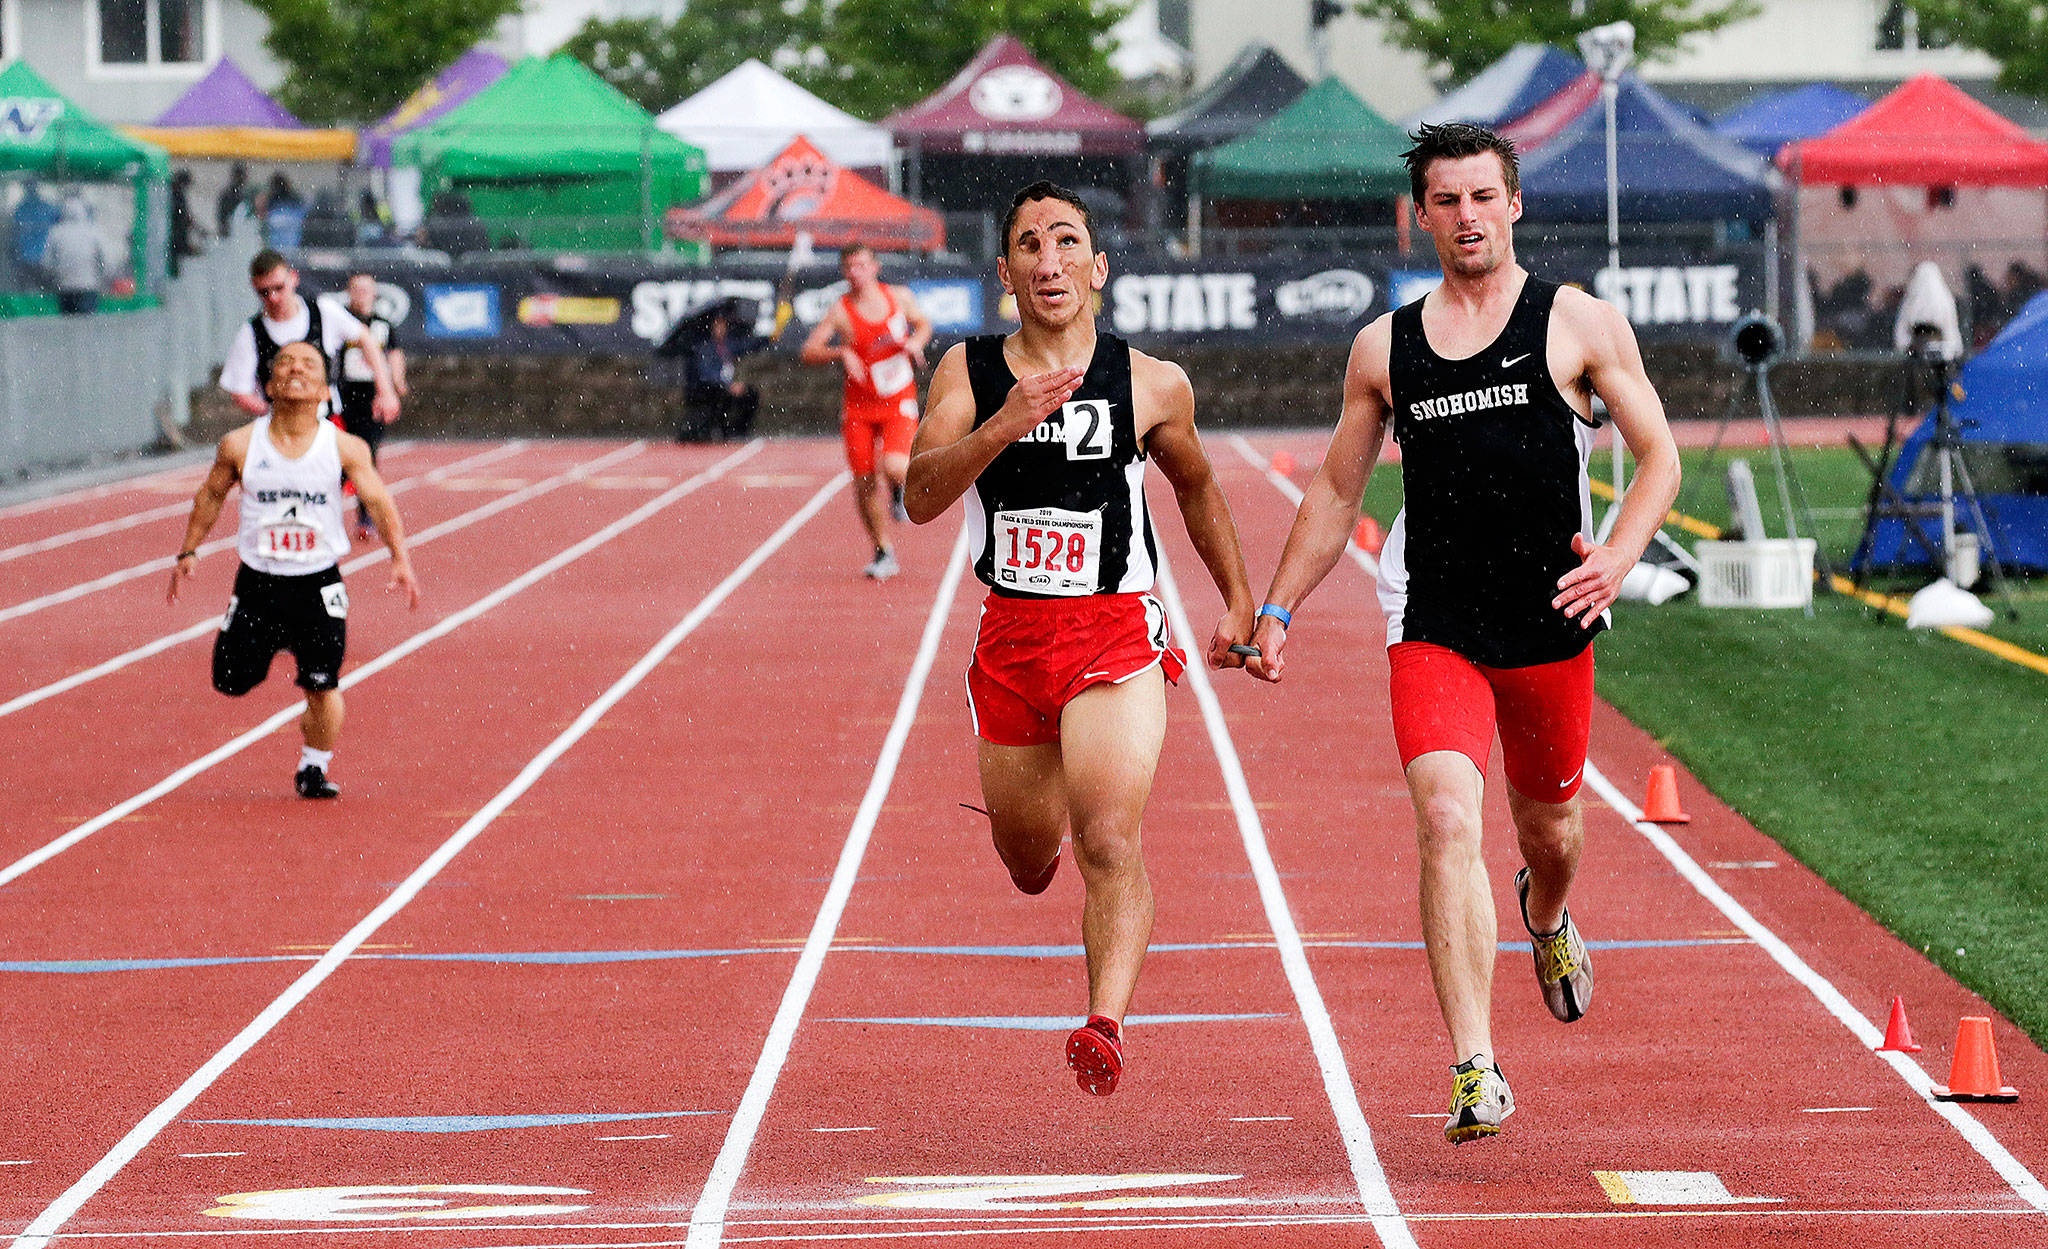 Snohomish's Humoody Smith (1528) and guide Zebedee Kumley cross the finish line first in the 200 Meter Ambulatory Dash at the Washington State track finals at Mount Tahoma Stadium on May 25, 2019, in Tacoma. (Andy Bronson / The Herald)